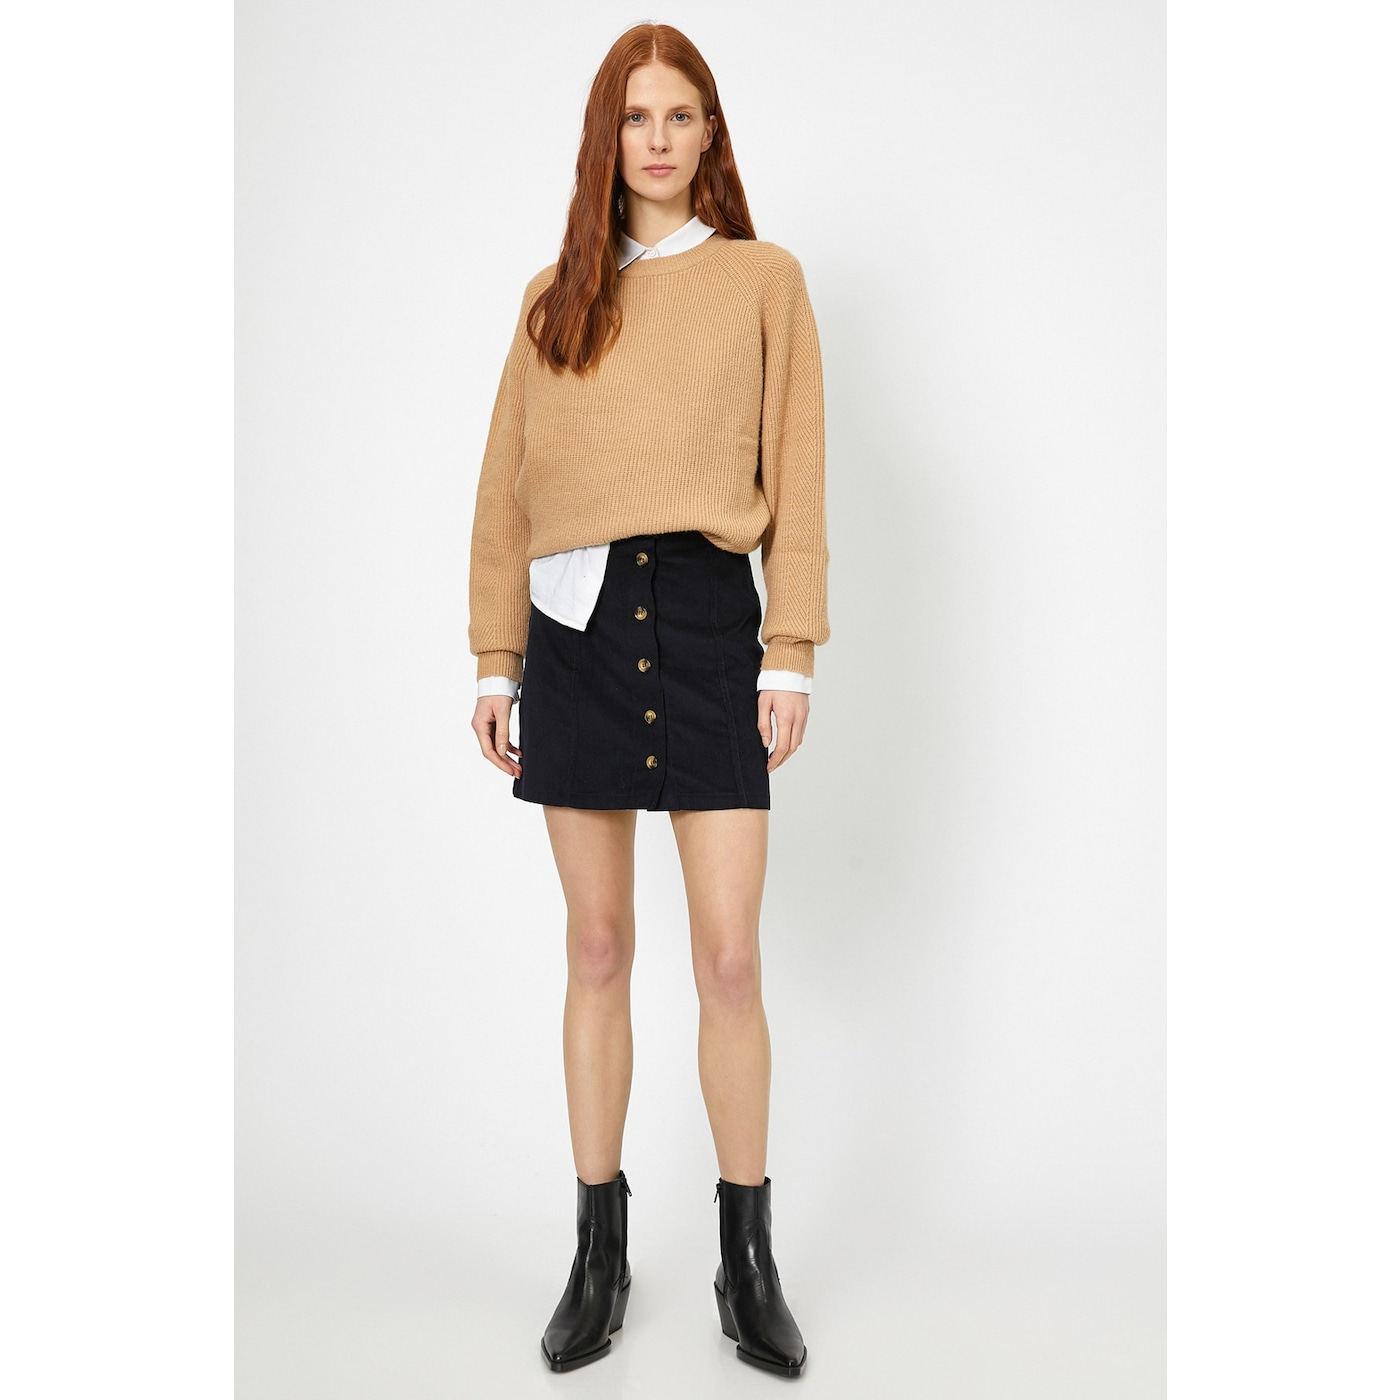 Koton Women Navy Blue Skirt